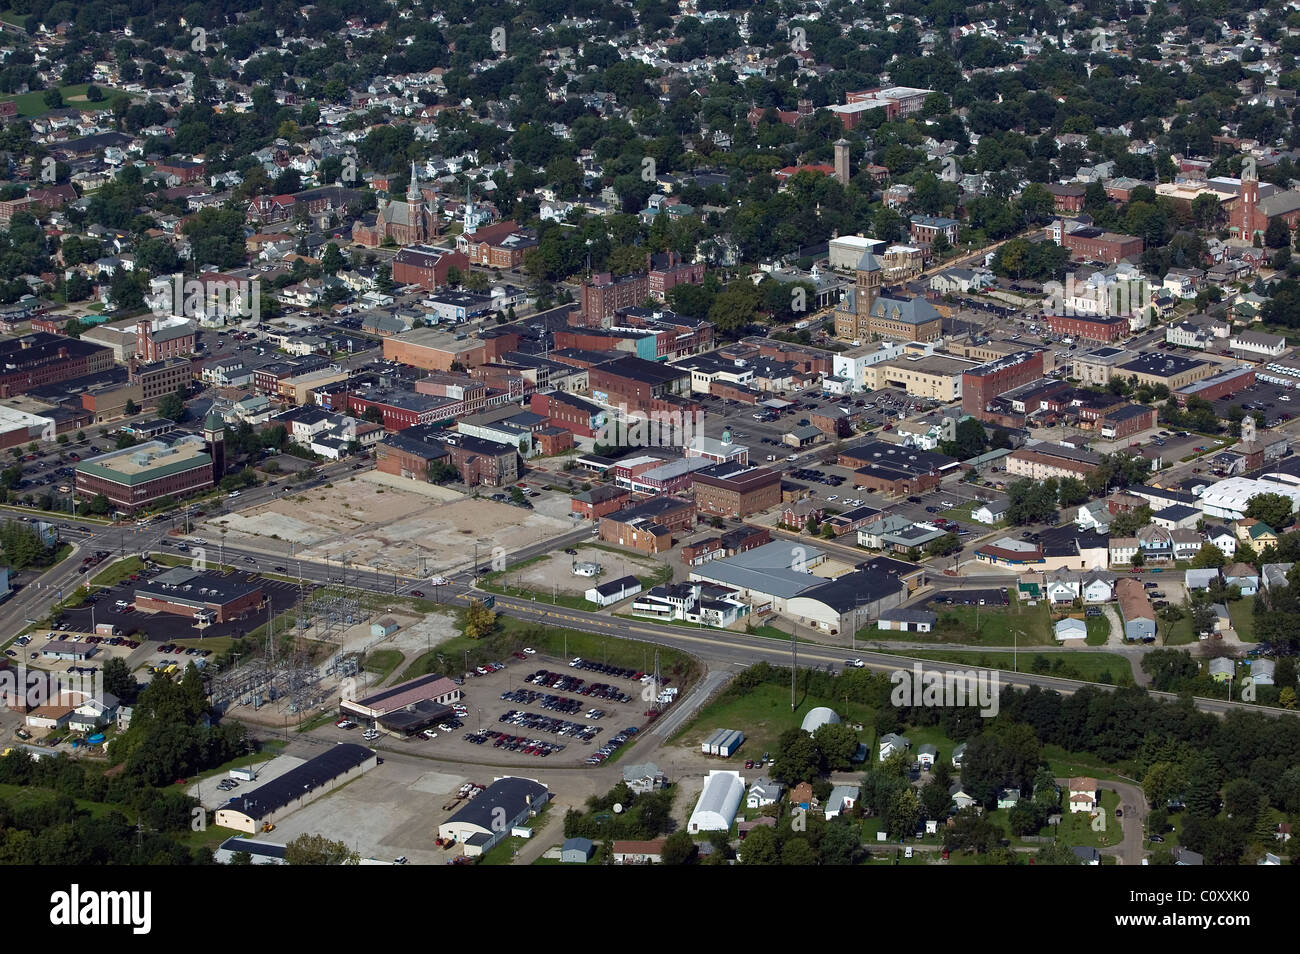 aerial view above center small city central Illinois - Stock Image